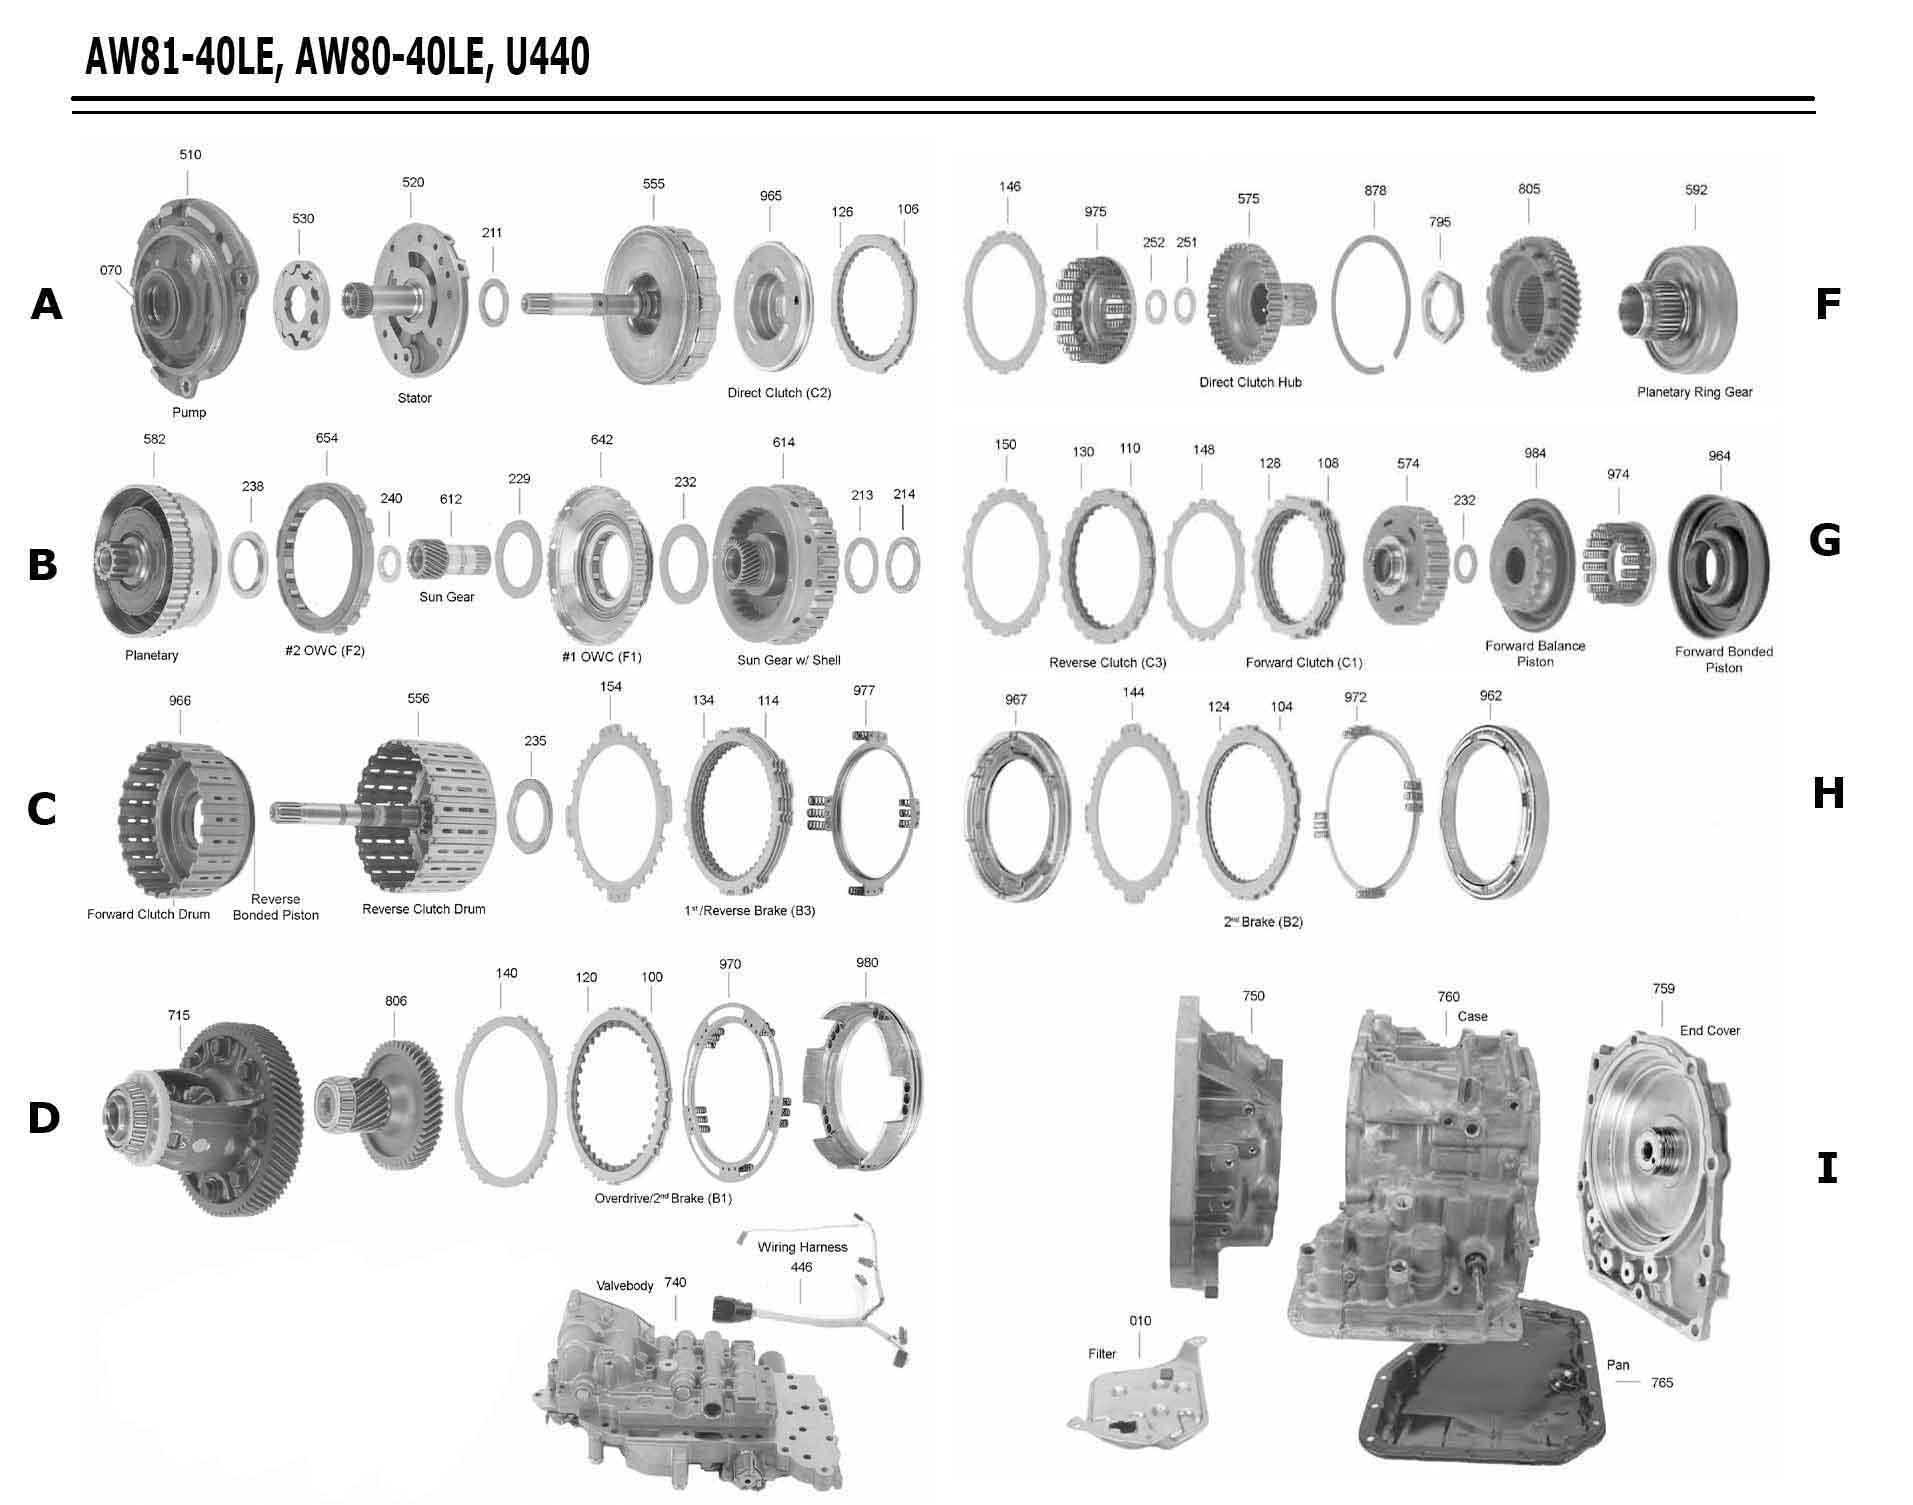 Transmission repair manuals U440E, (AW80/81-40